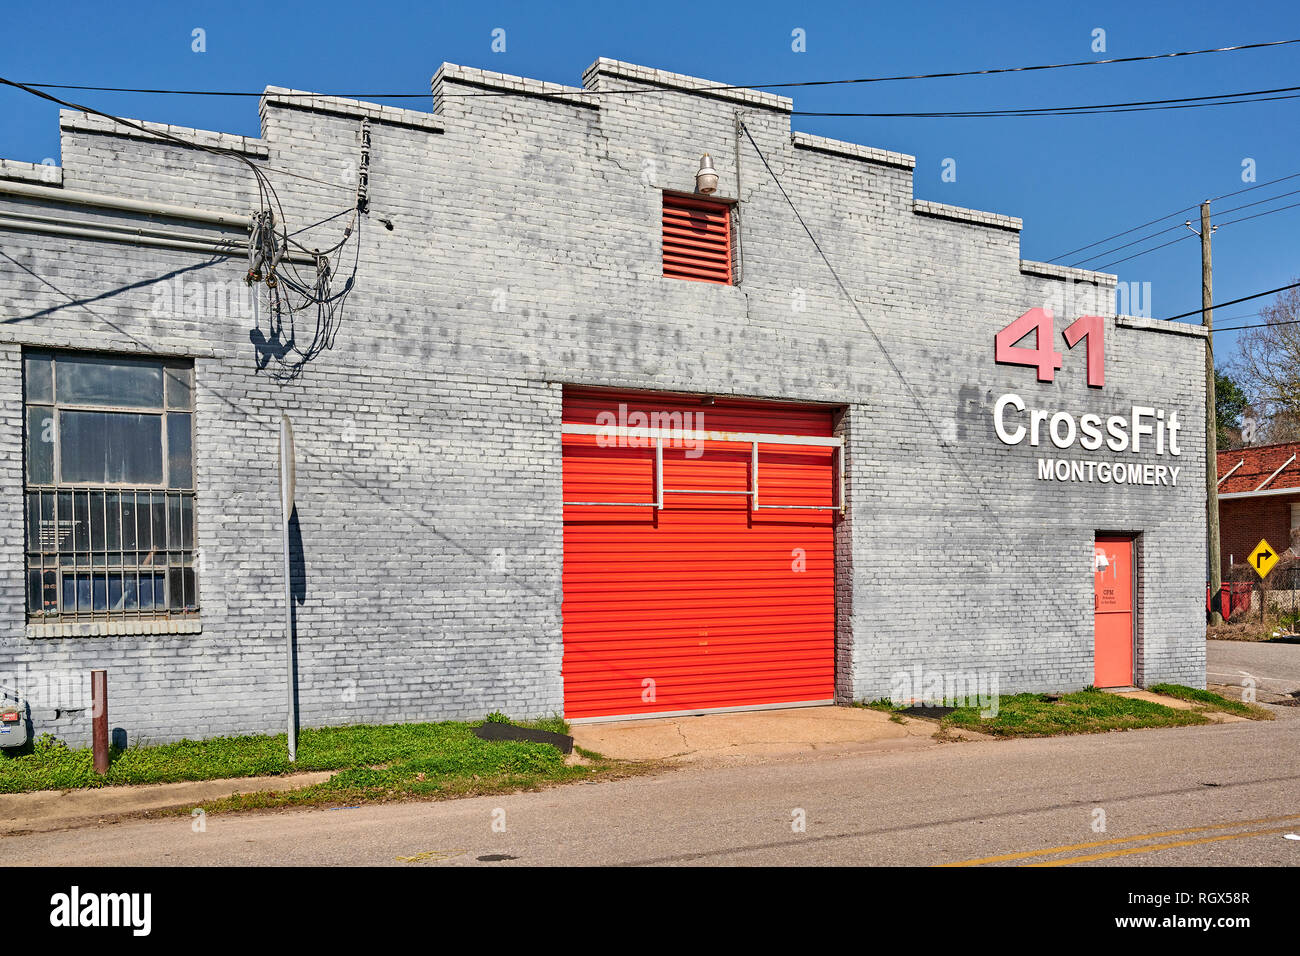 Crossfit front exterior entrance of the fitness center or workout gym or health club in Montgomery Alabama, USA. - Stock Image